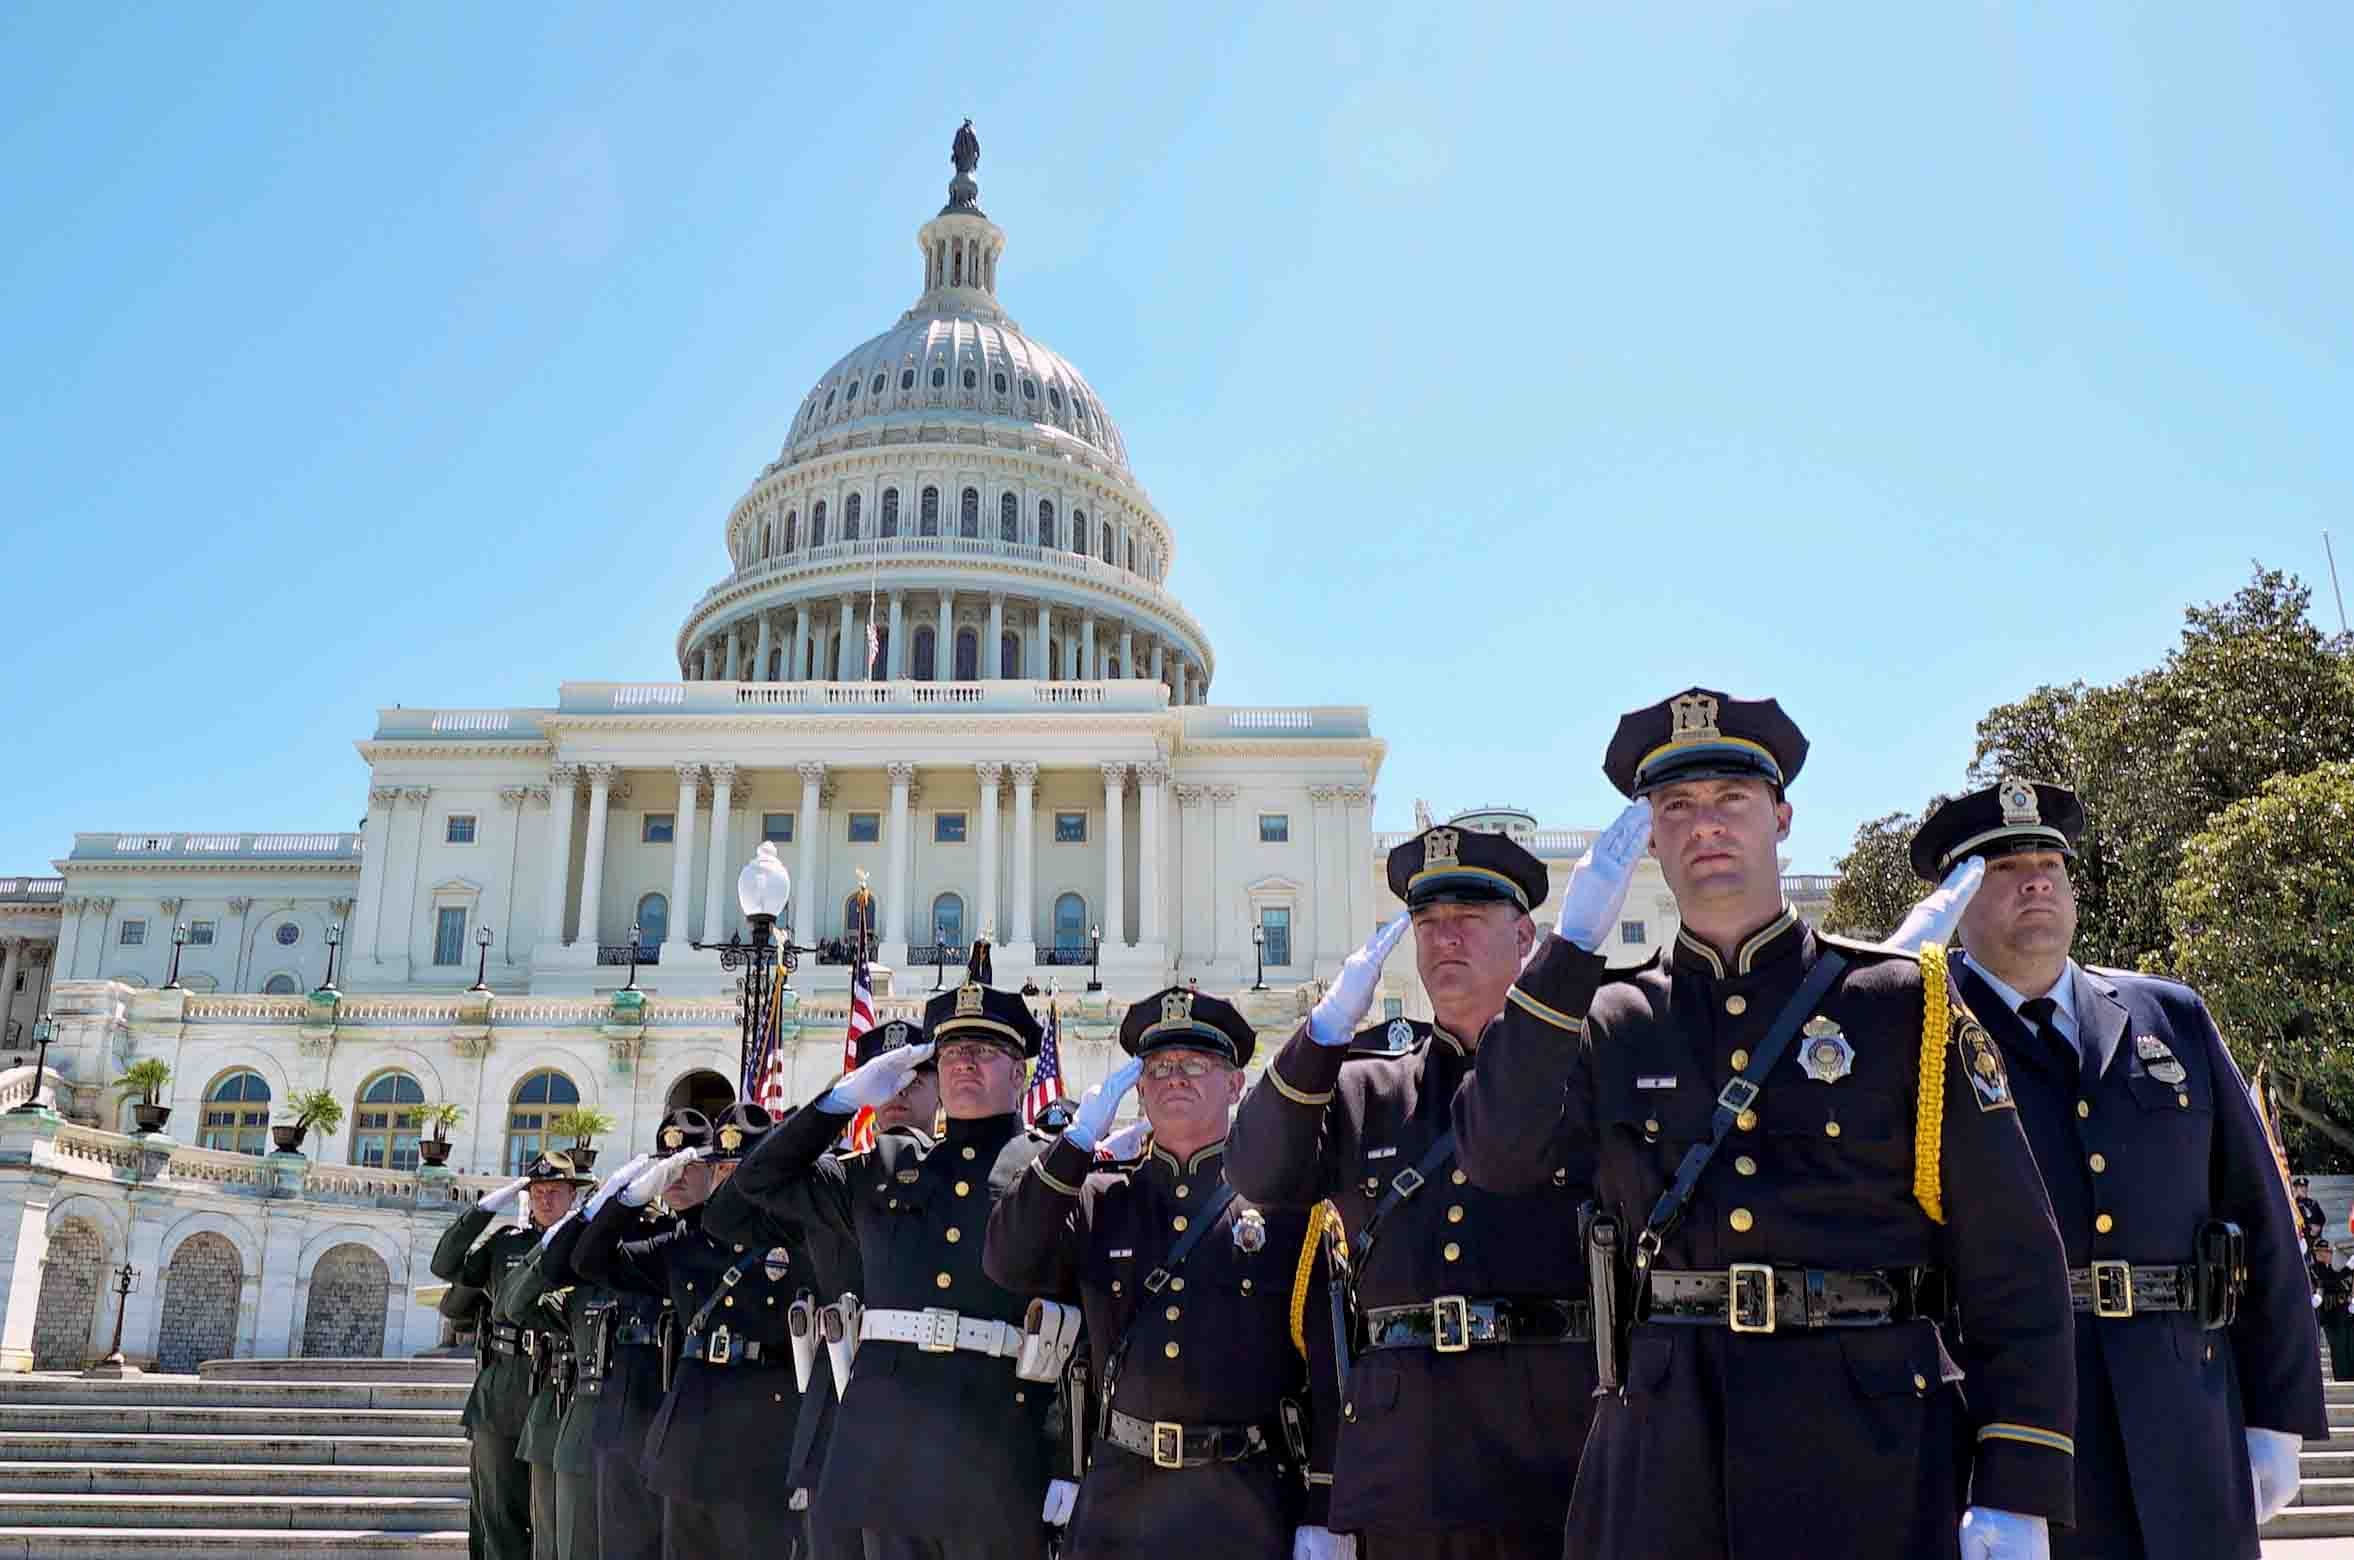 Nine police officers salute with the capitol building behind them during National Police Week 2017 in Washington DC.